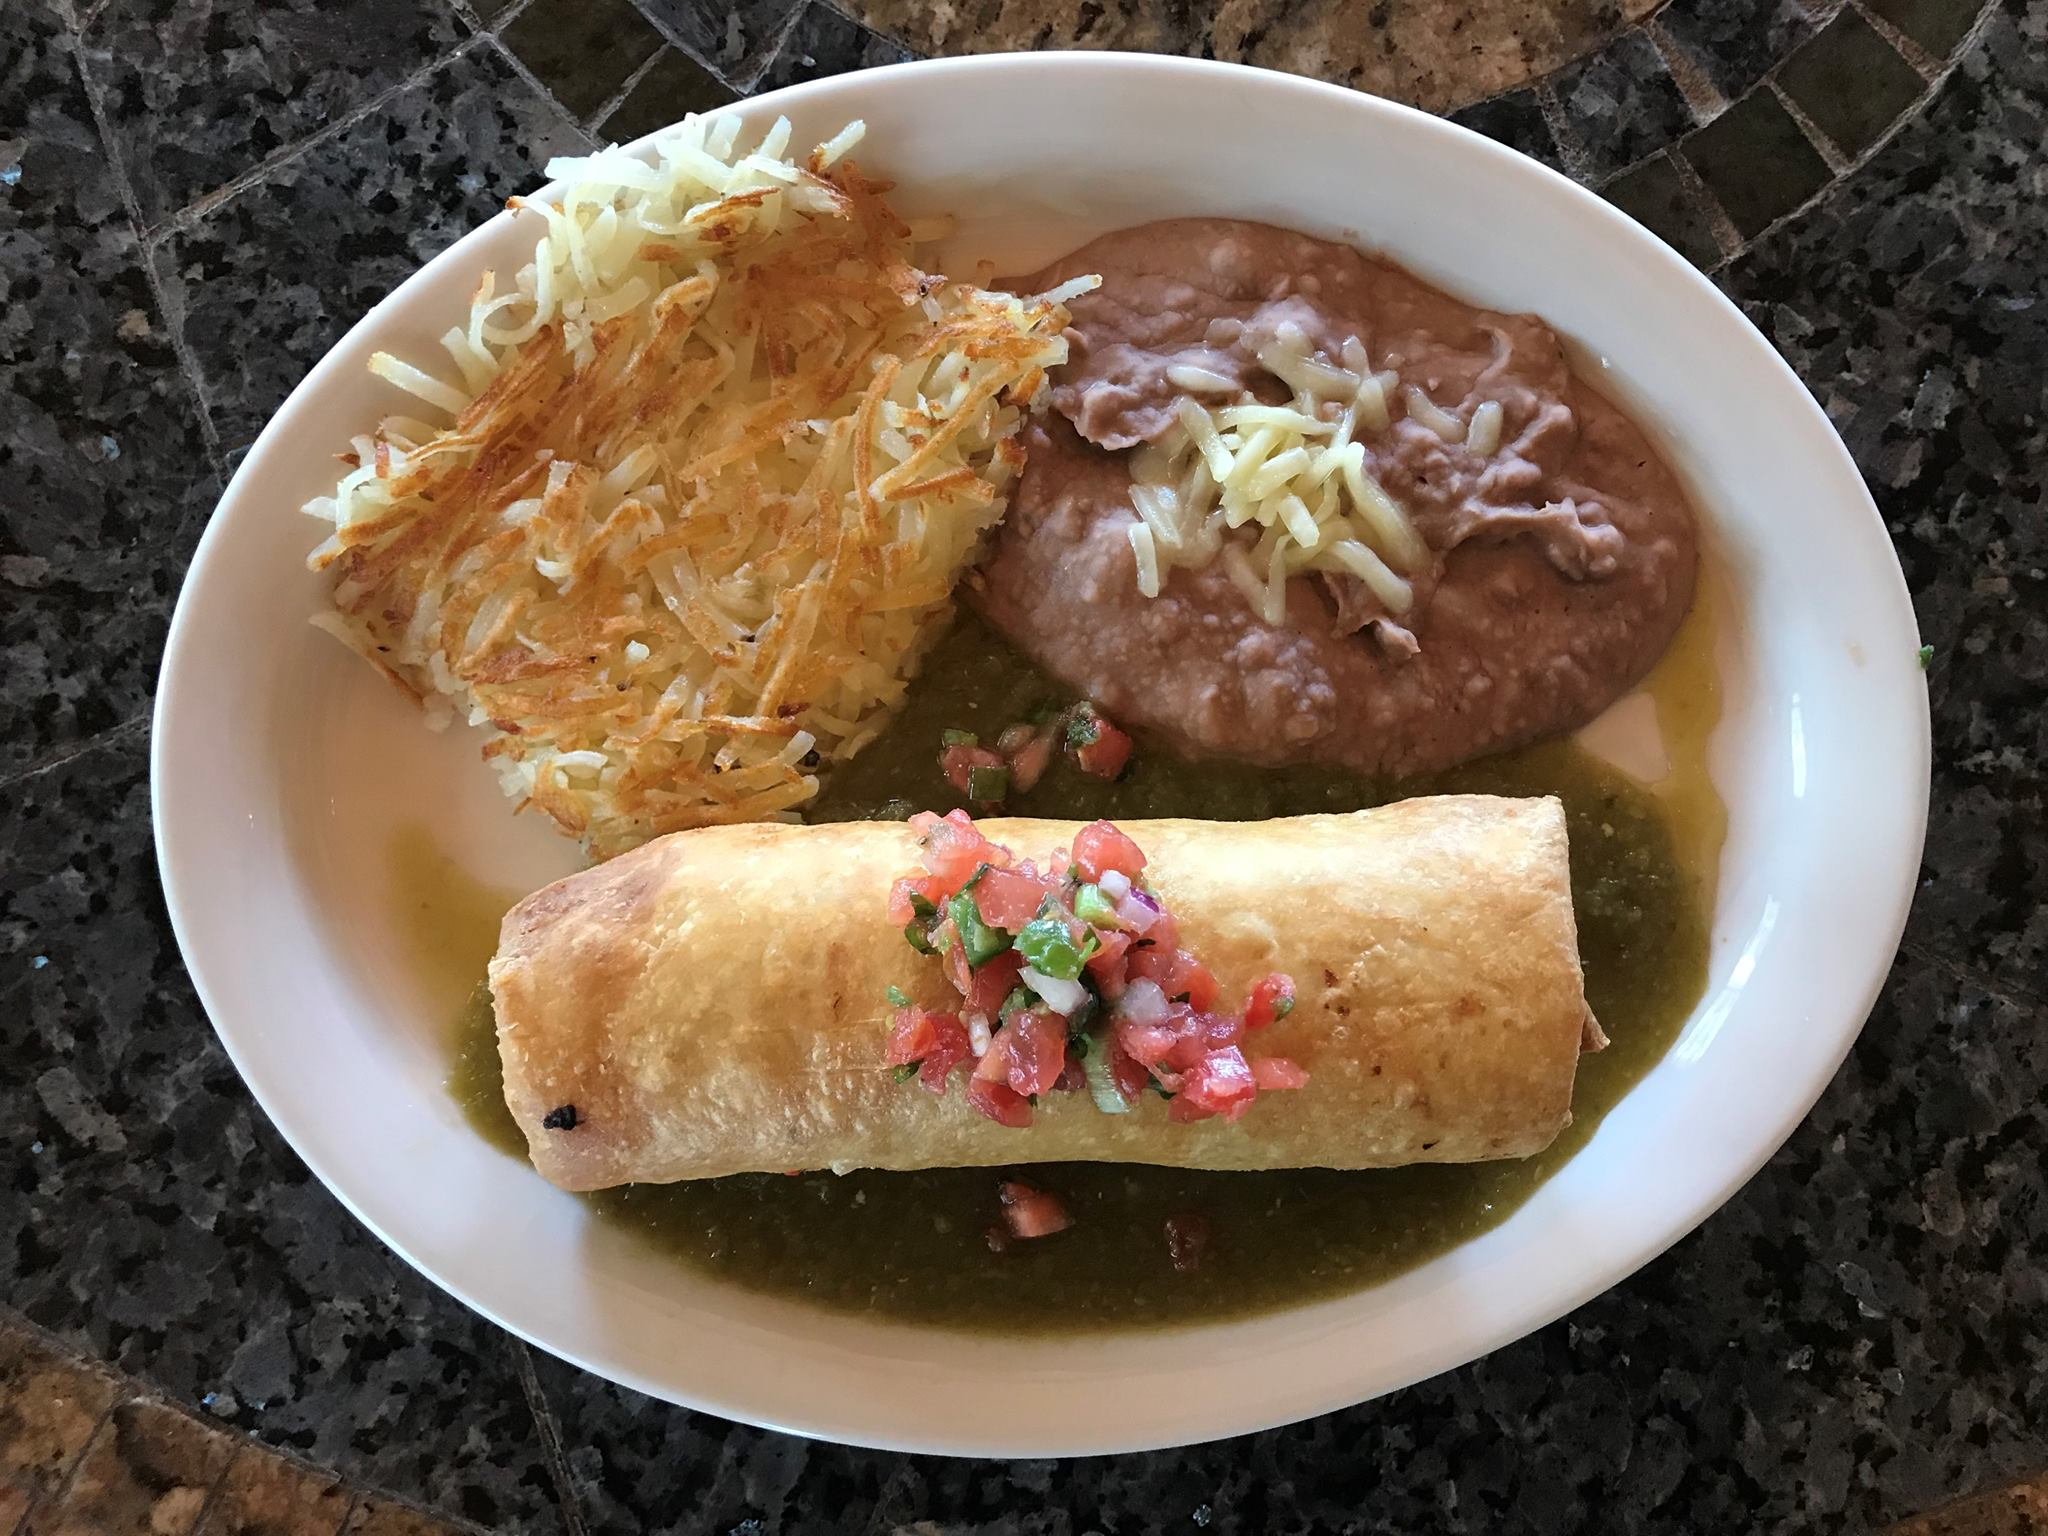 The migas chimichanga at Trudy's